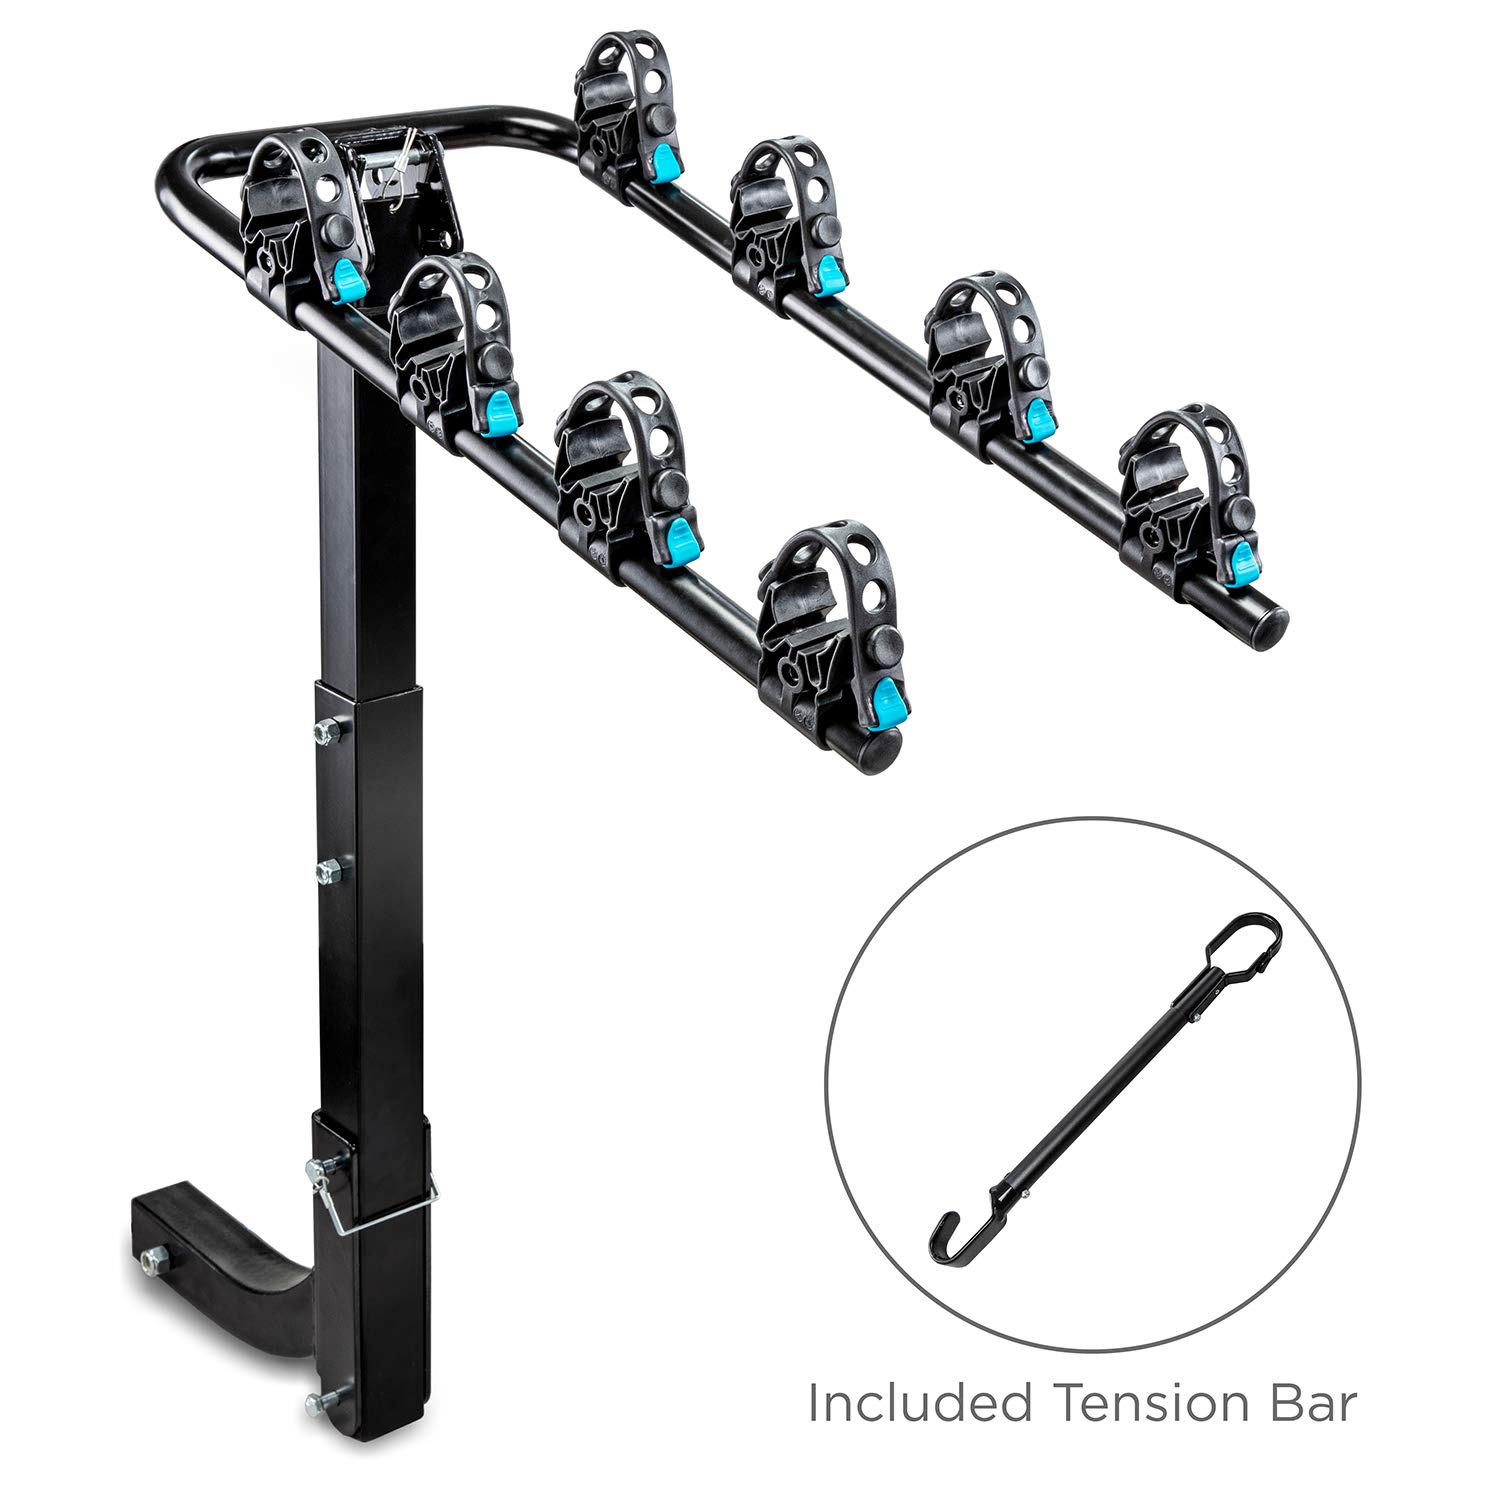 "RaxGo Hitch Mounted 4 - Bike Rack Carrier, Sturdy Bicycle Rack with Tension Bar Included – Fits 2"" Receiver – Foldable Design for Extra Convenience – Durable Powder-Coated Steel – Easy Assembly"